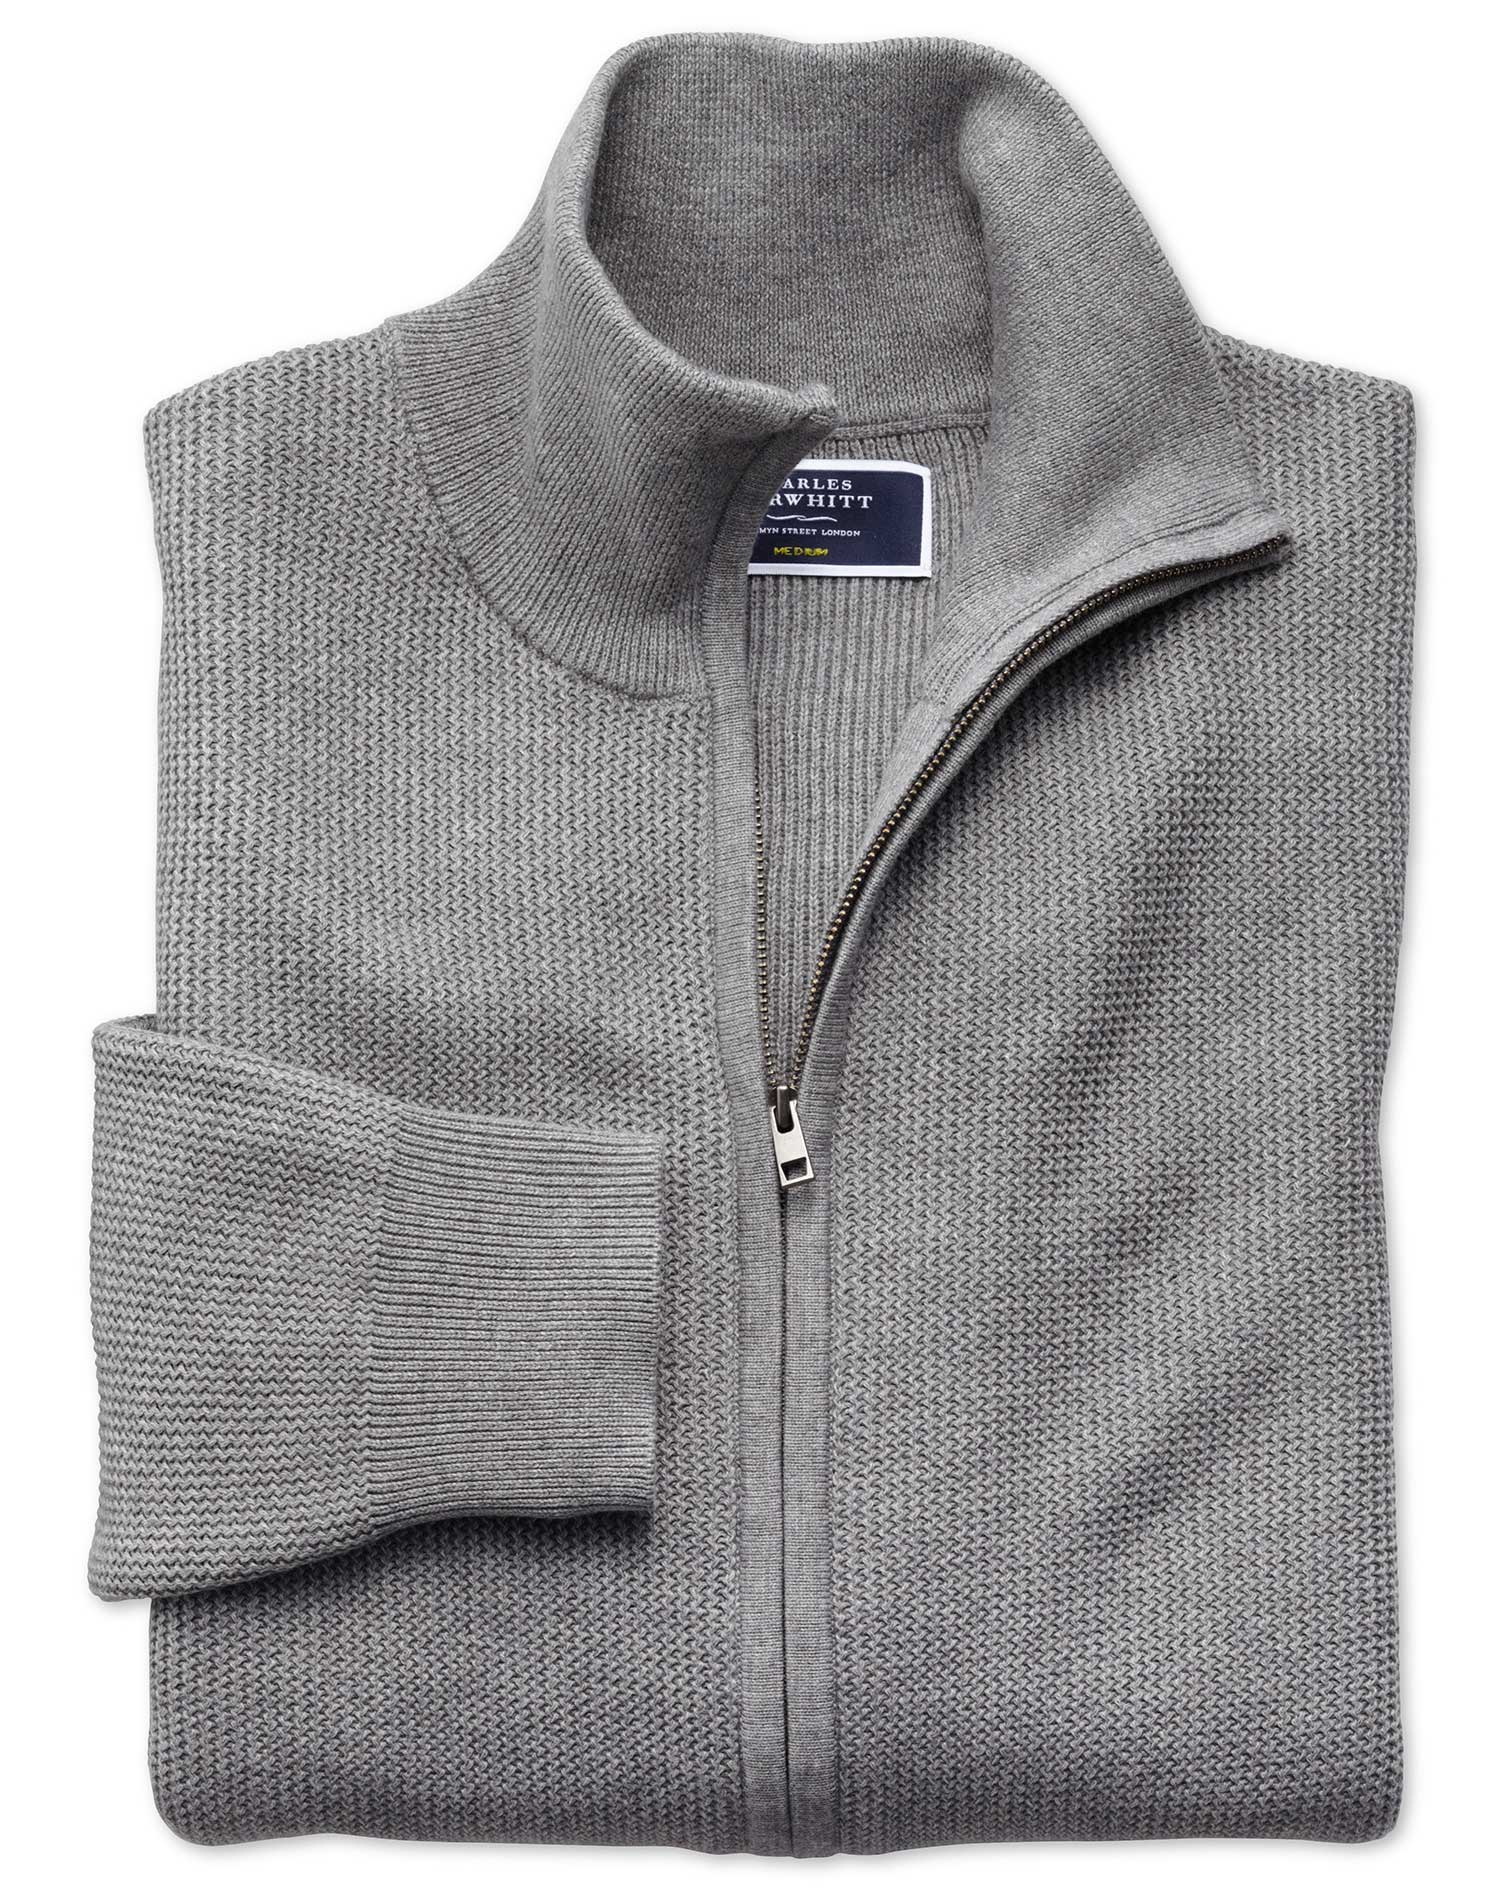 Silver Pima Cotton Textured Zip Through Cardigan Size Small by Charles Tyrwhitt